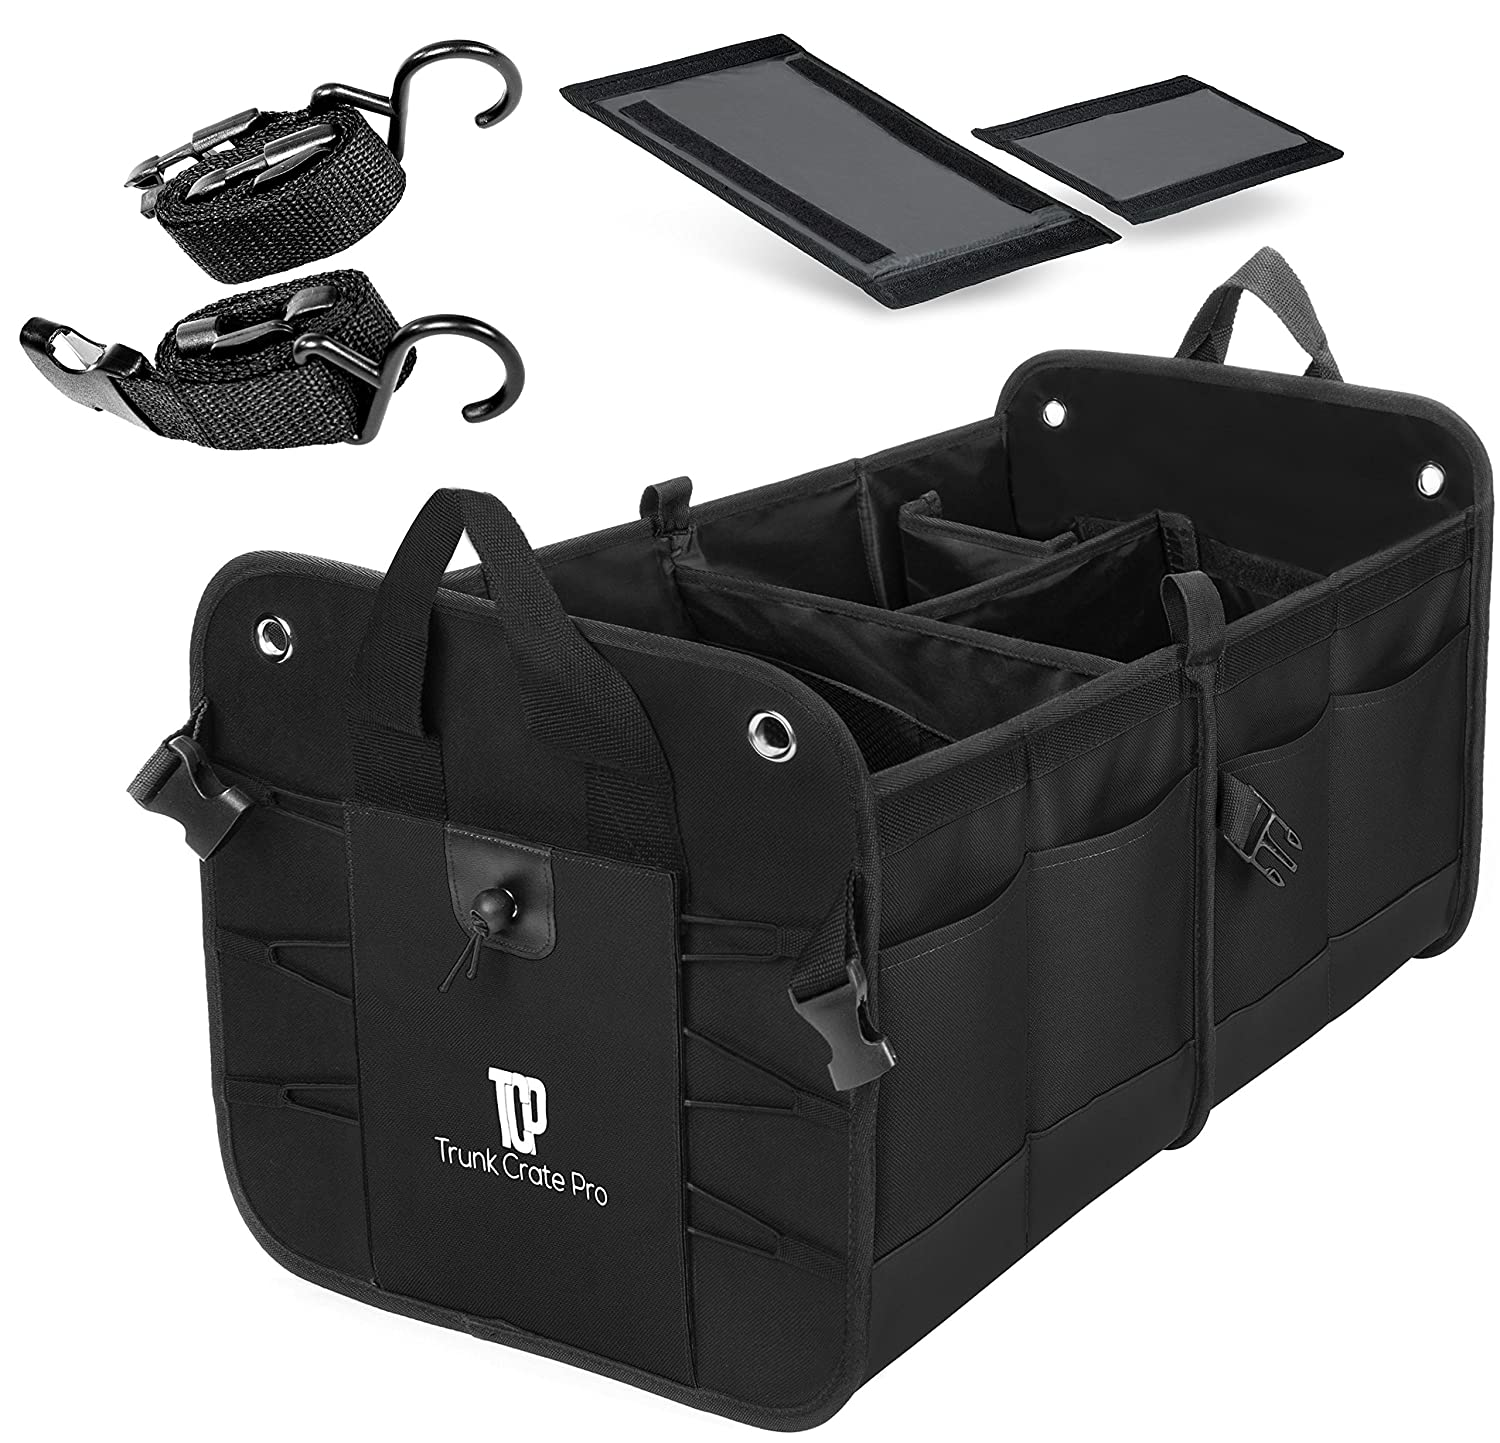 The Best Trunk Organizers For Your Vehicle: Reviews & Buying Guide 6